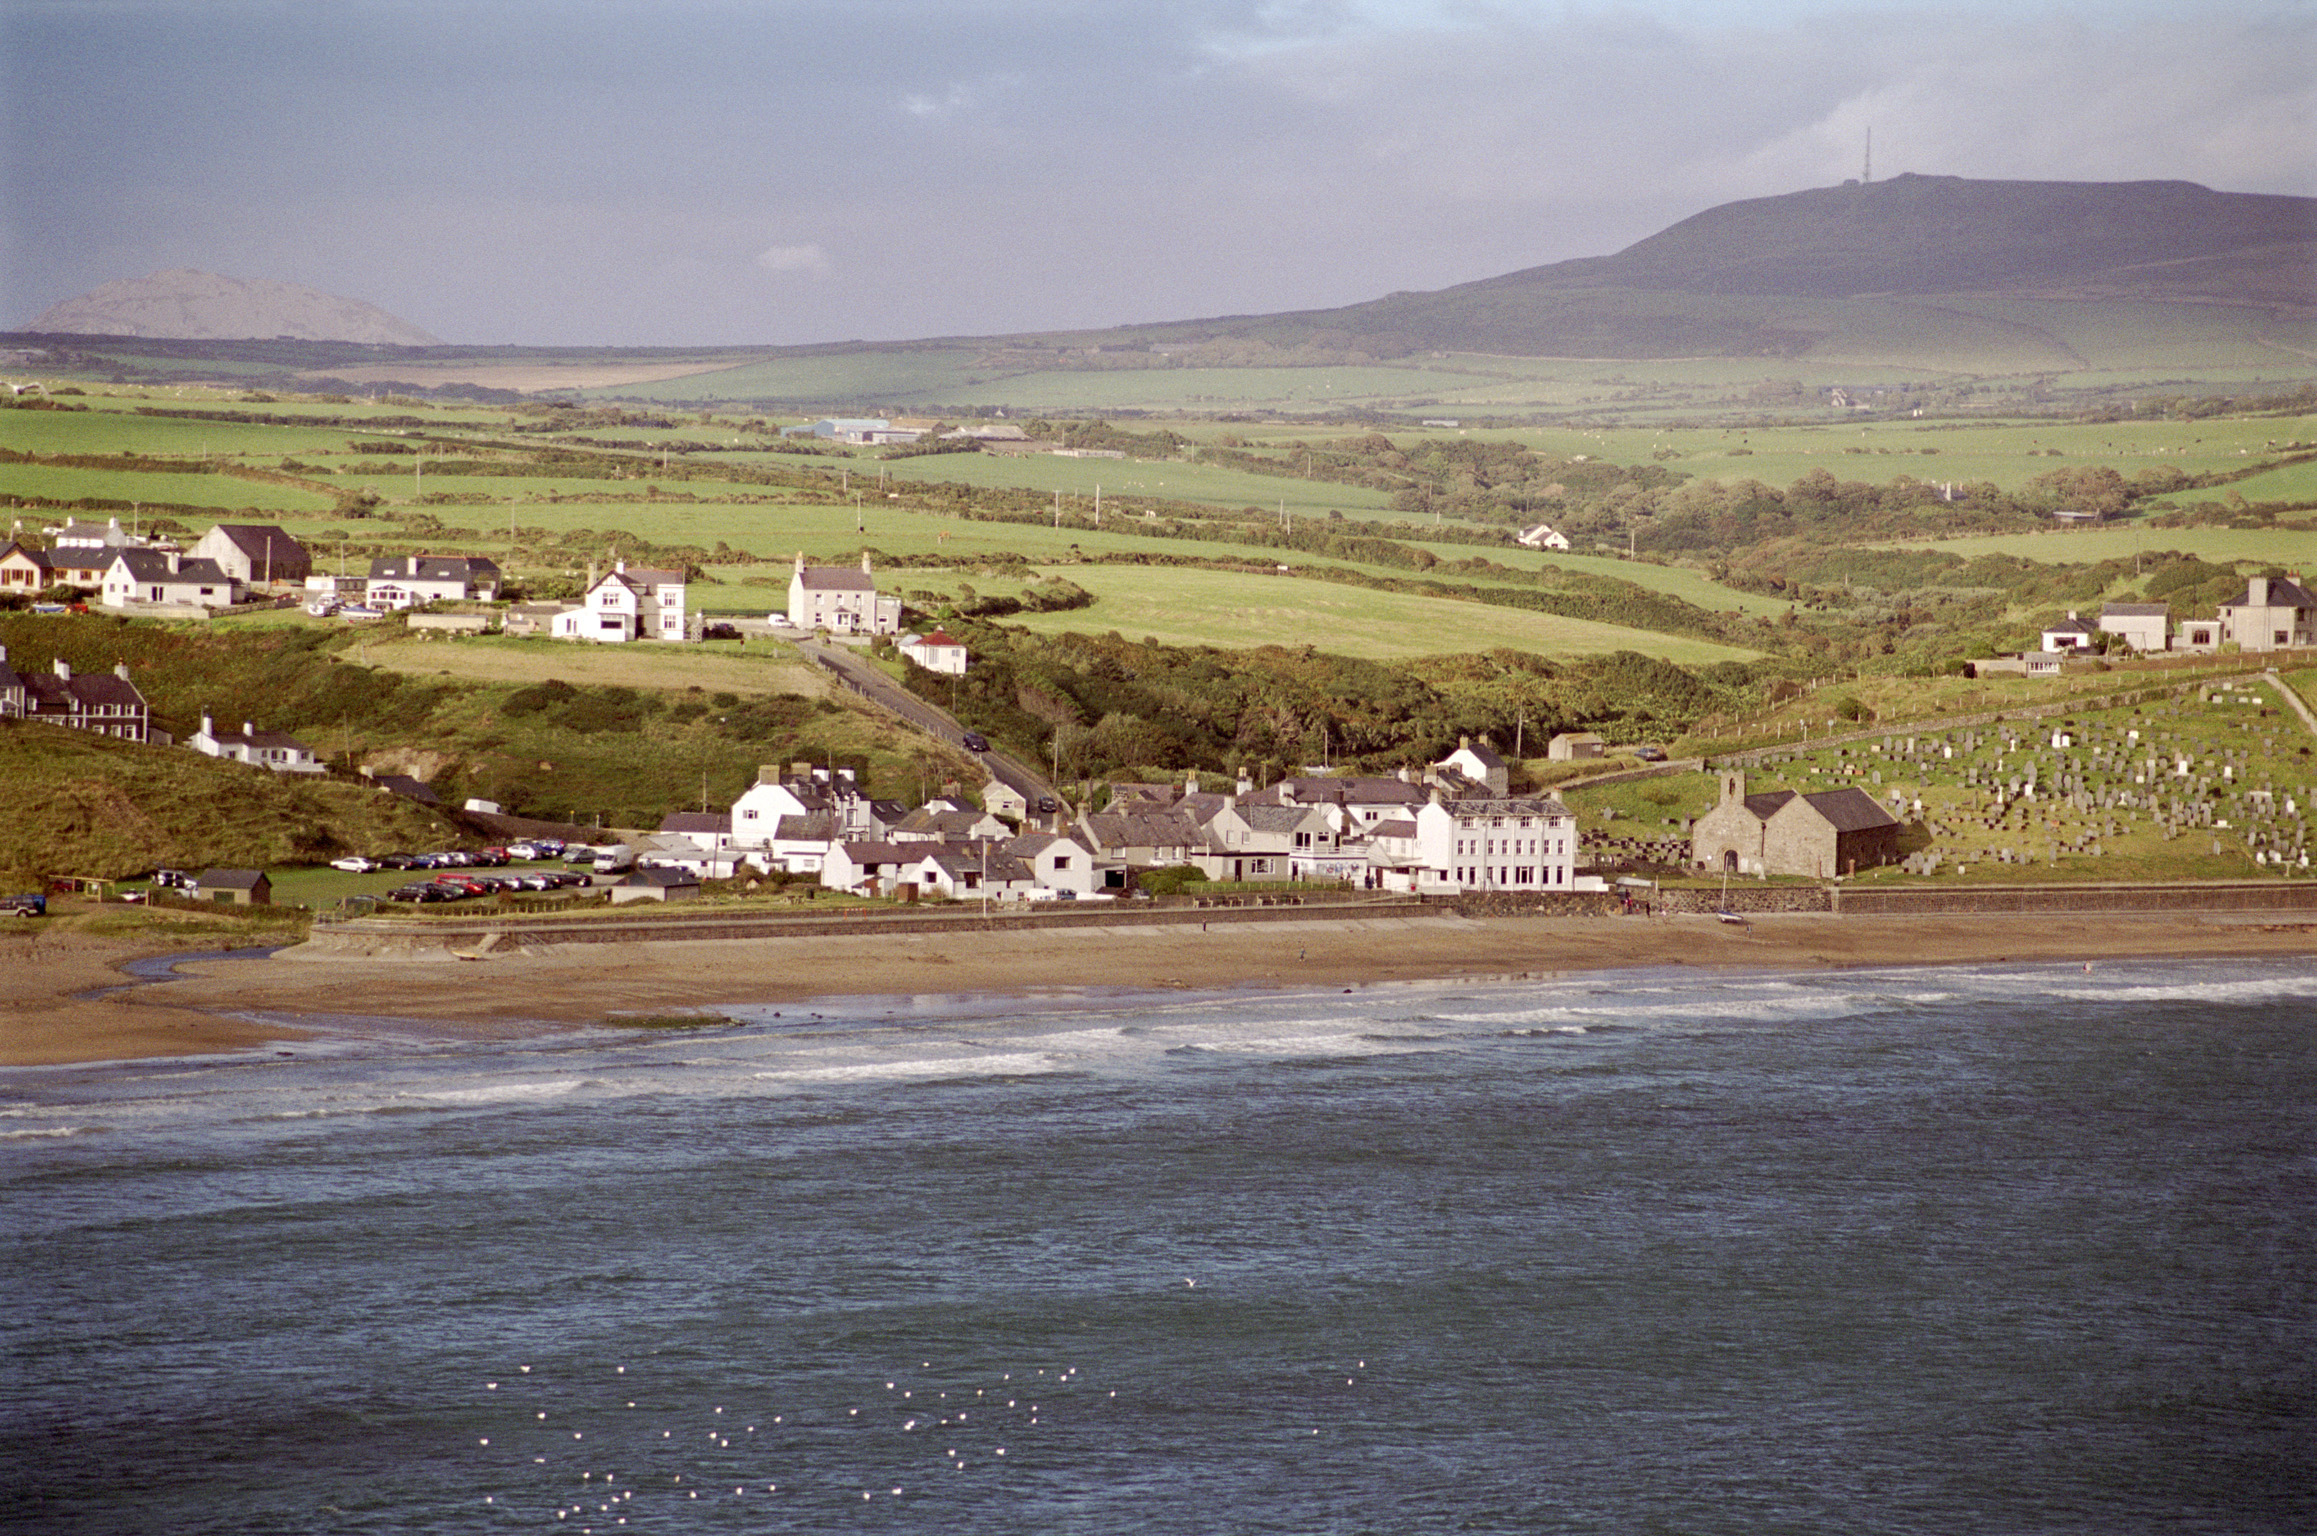 Extensive View of Aberdaron Village of Gwynedd, United Kingdom. Captured with Small Houses on Green Landscape Fronting the Sea.